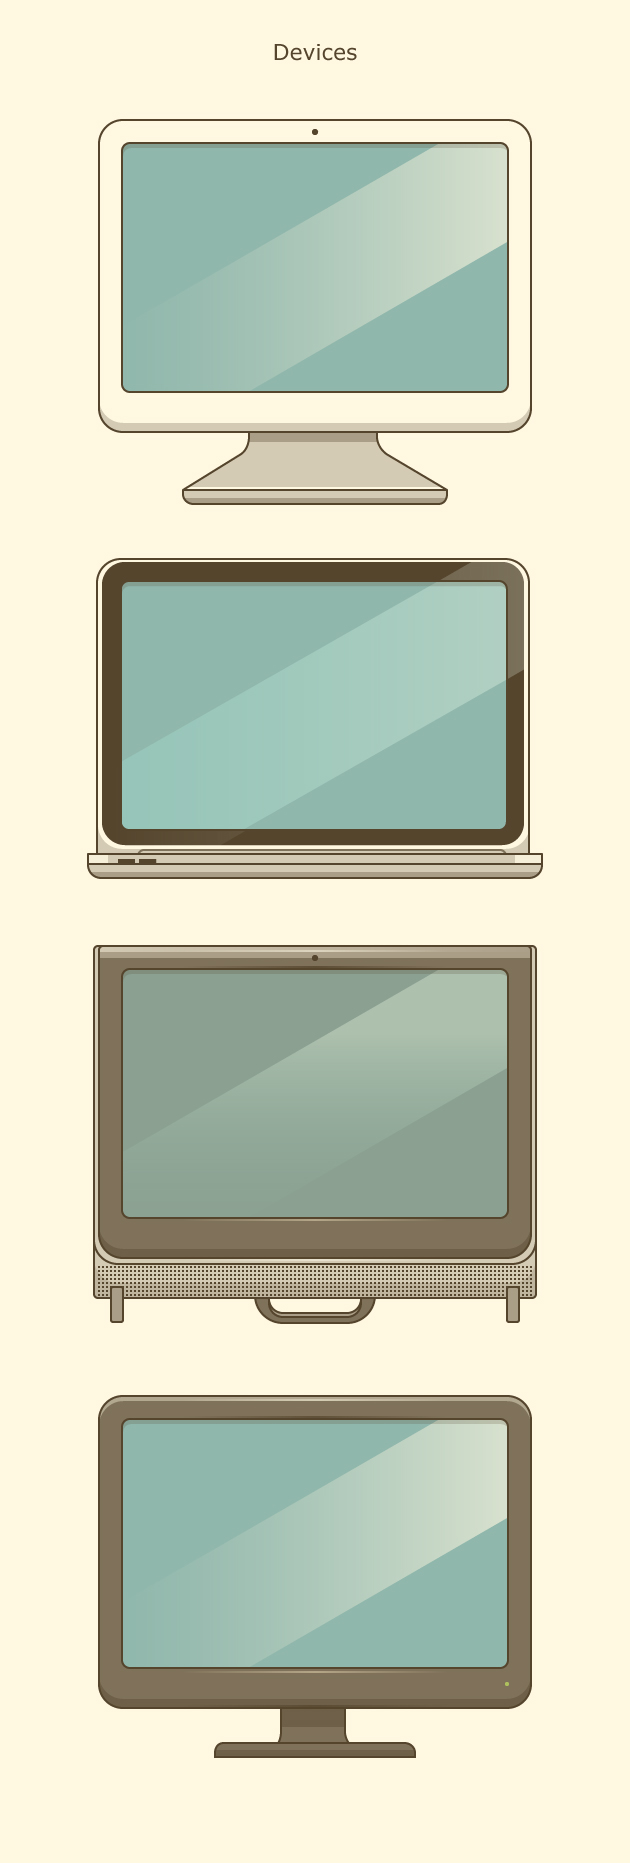 desktop_devices_vector_06